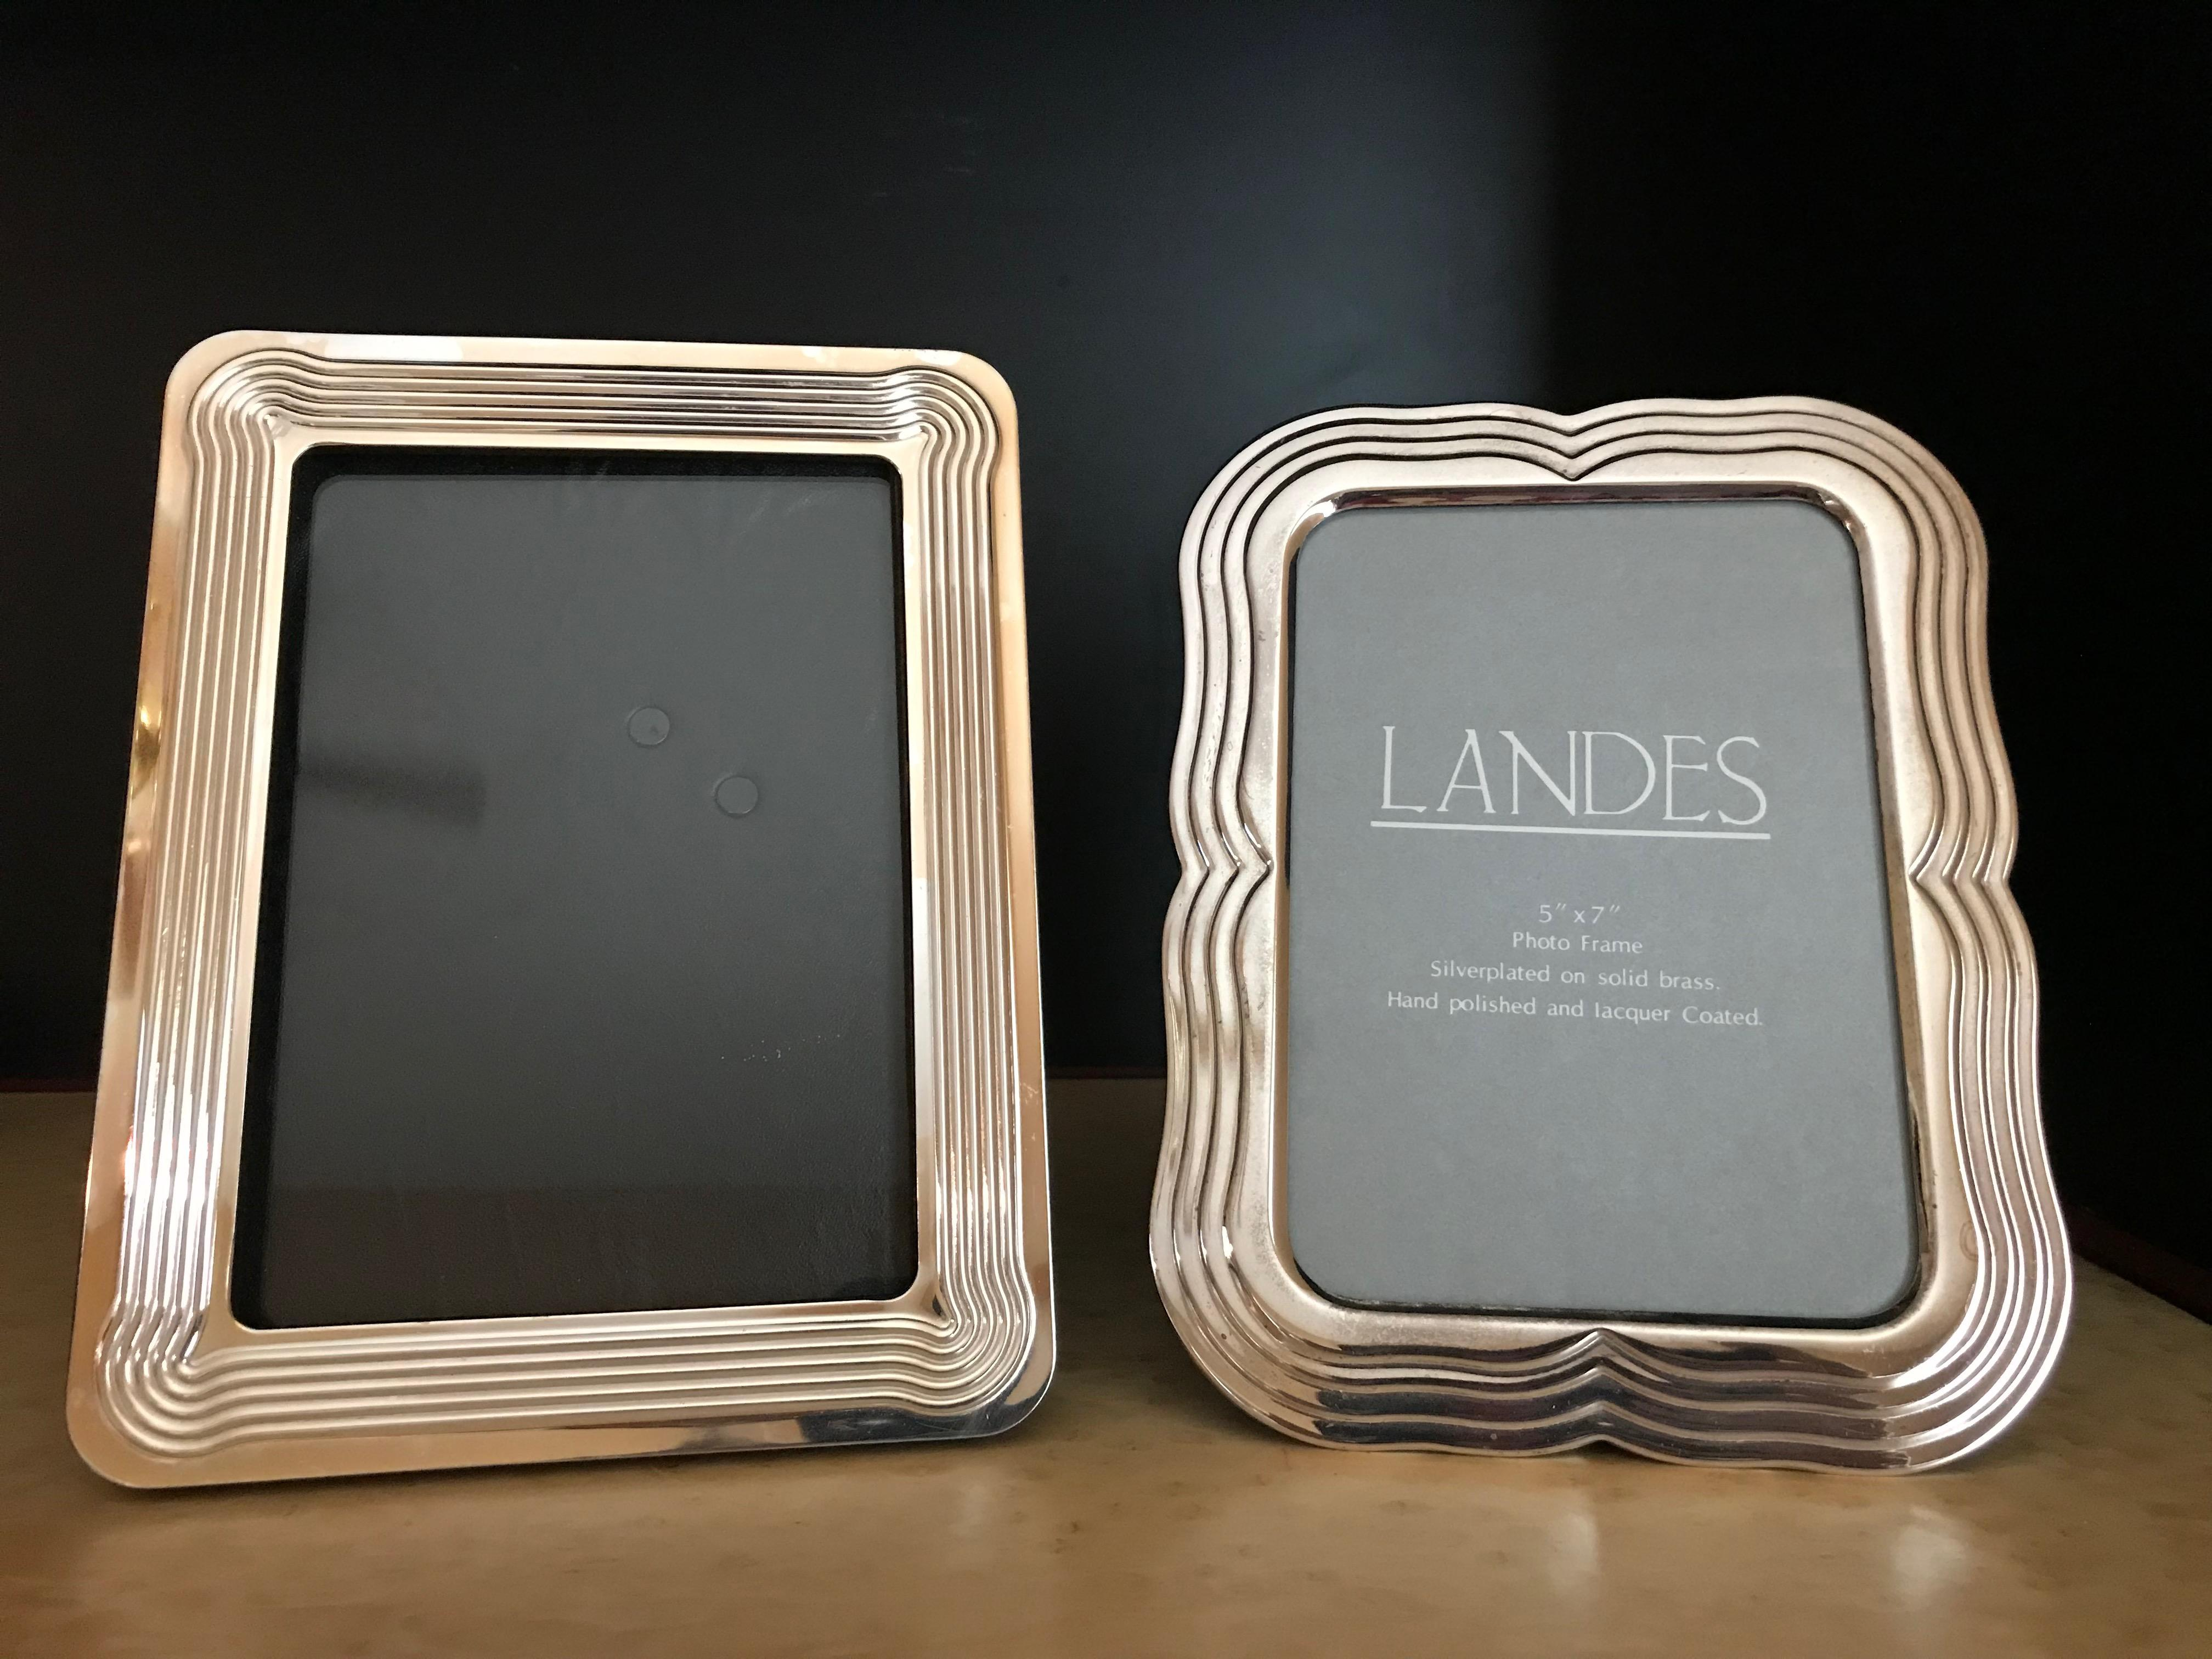 silver modern picture frames. Silver Modern Picture Frames. 1980s Mid-century Edge-detailed  Frames S